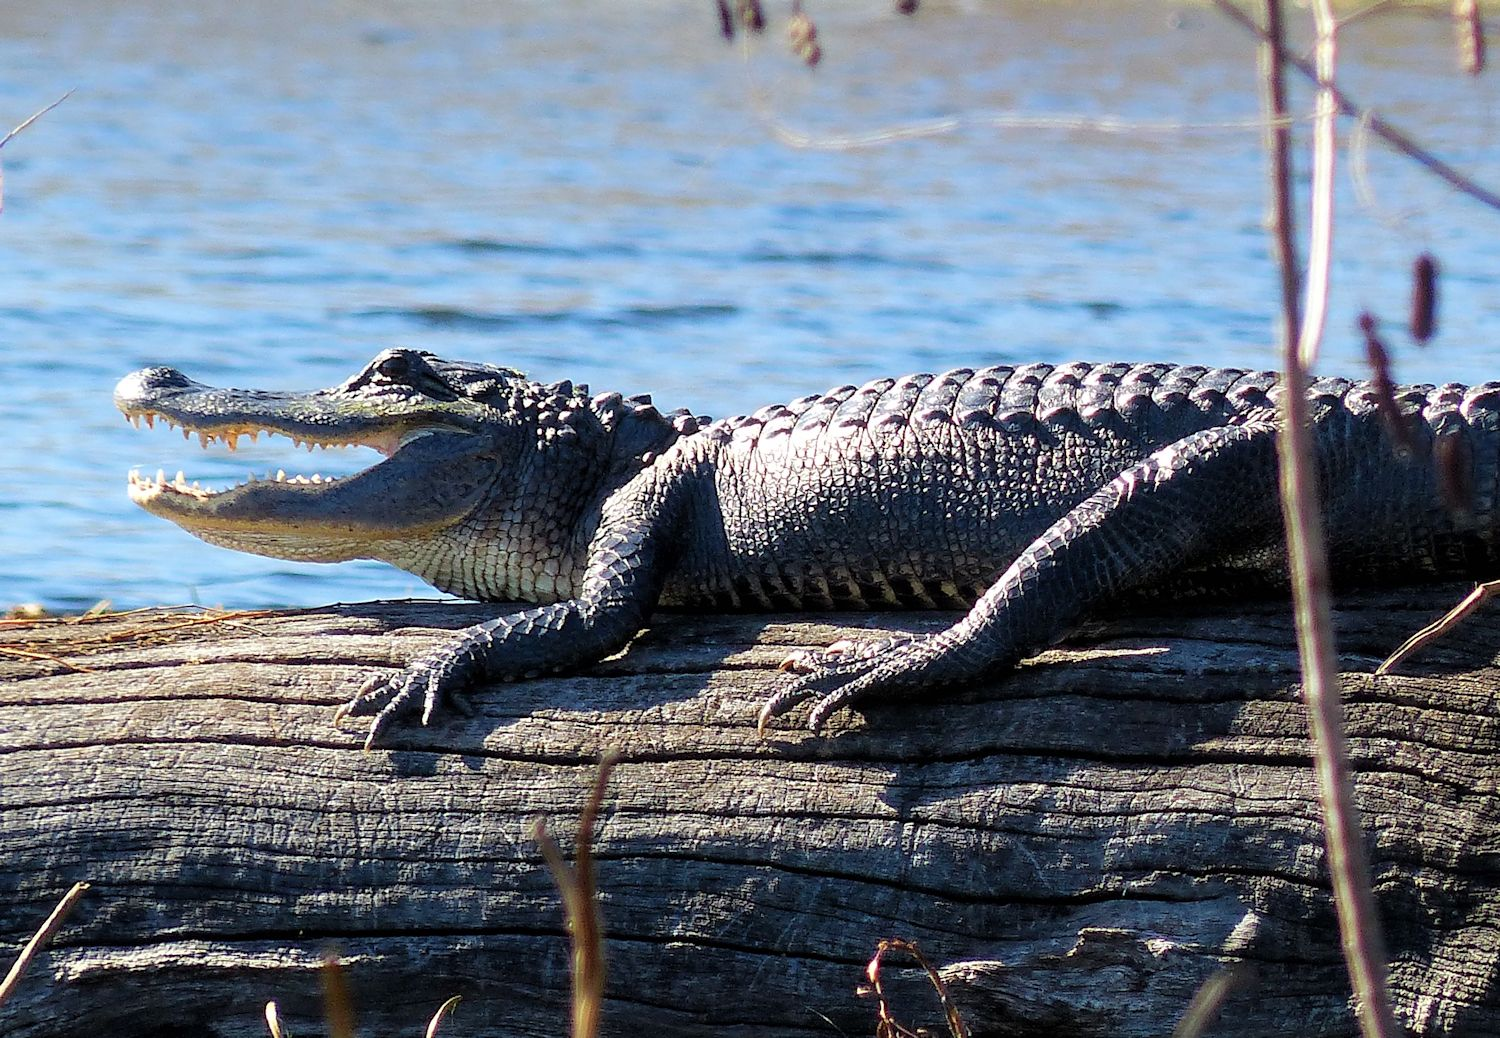 Now, this is a big alligator.